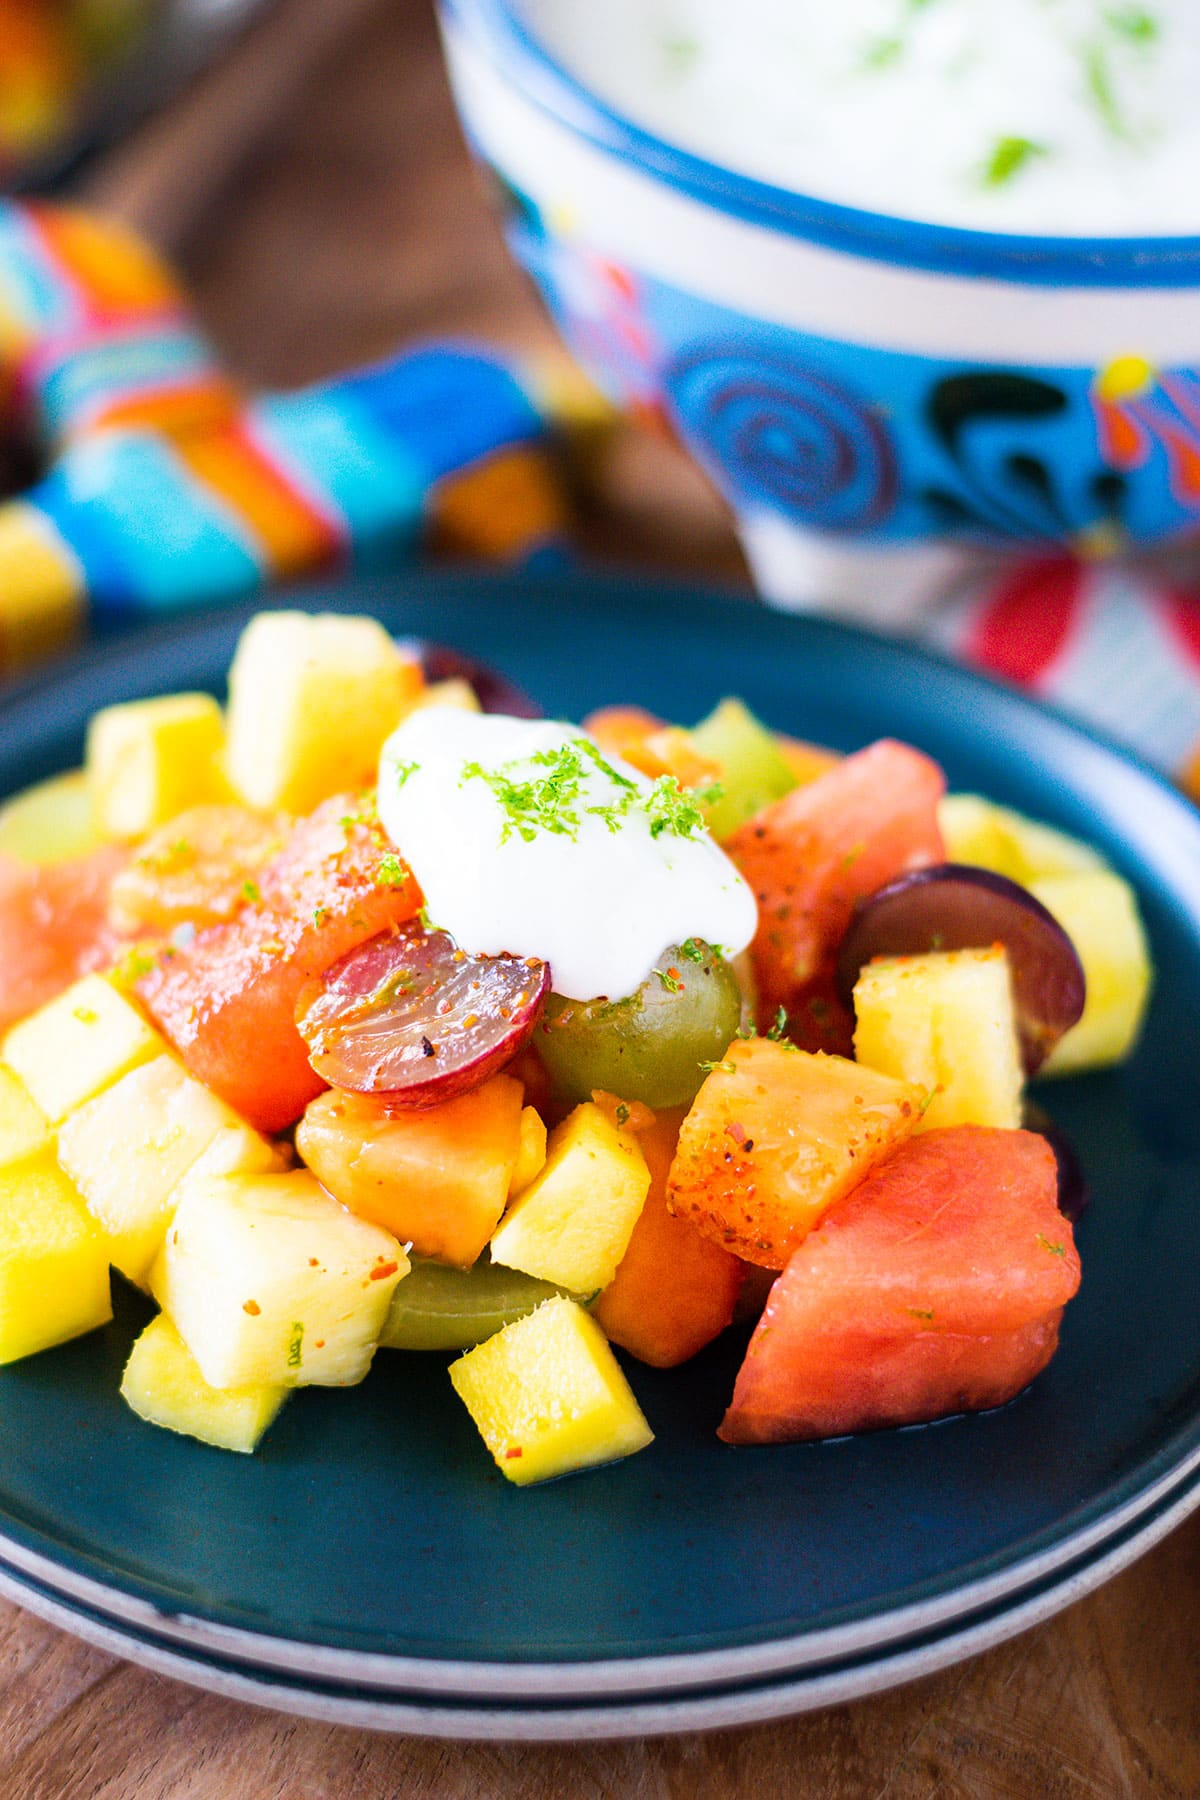 Plated Mexican fruit salad with lime yogurt dolloped on top.